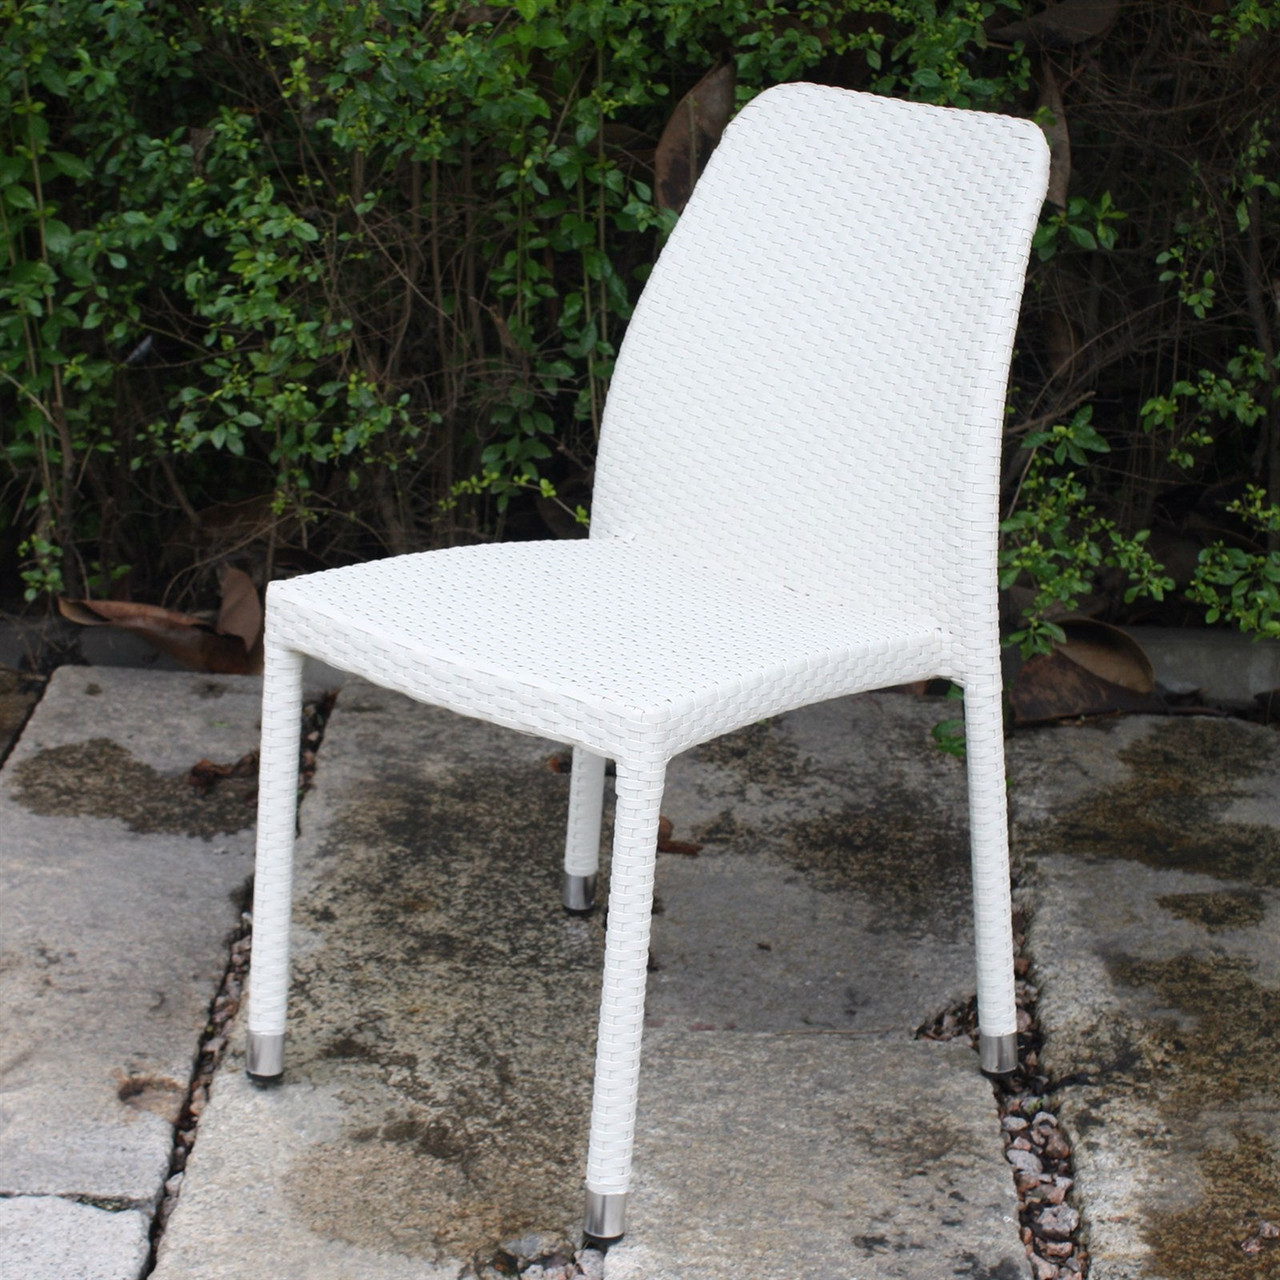 Pleasant Outdoor Stacking Patio Dining Chair All Weather White Wicker Resin Alphanode Cool Chair Designs And Ideas Alphanodeonline